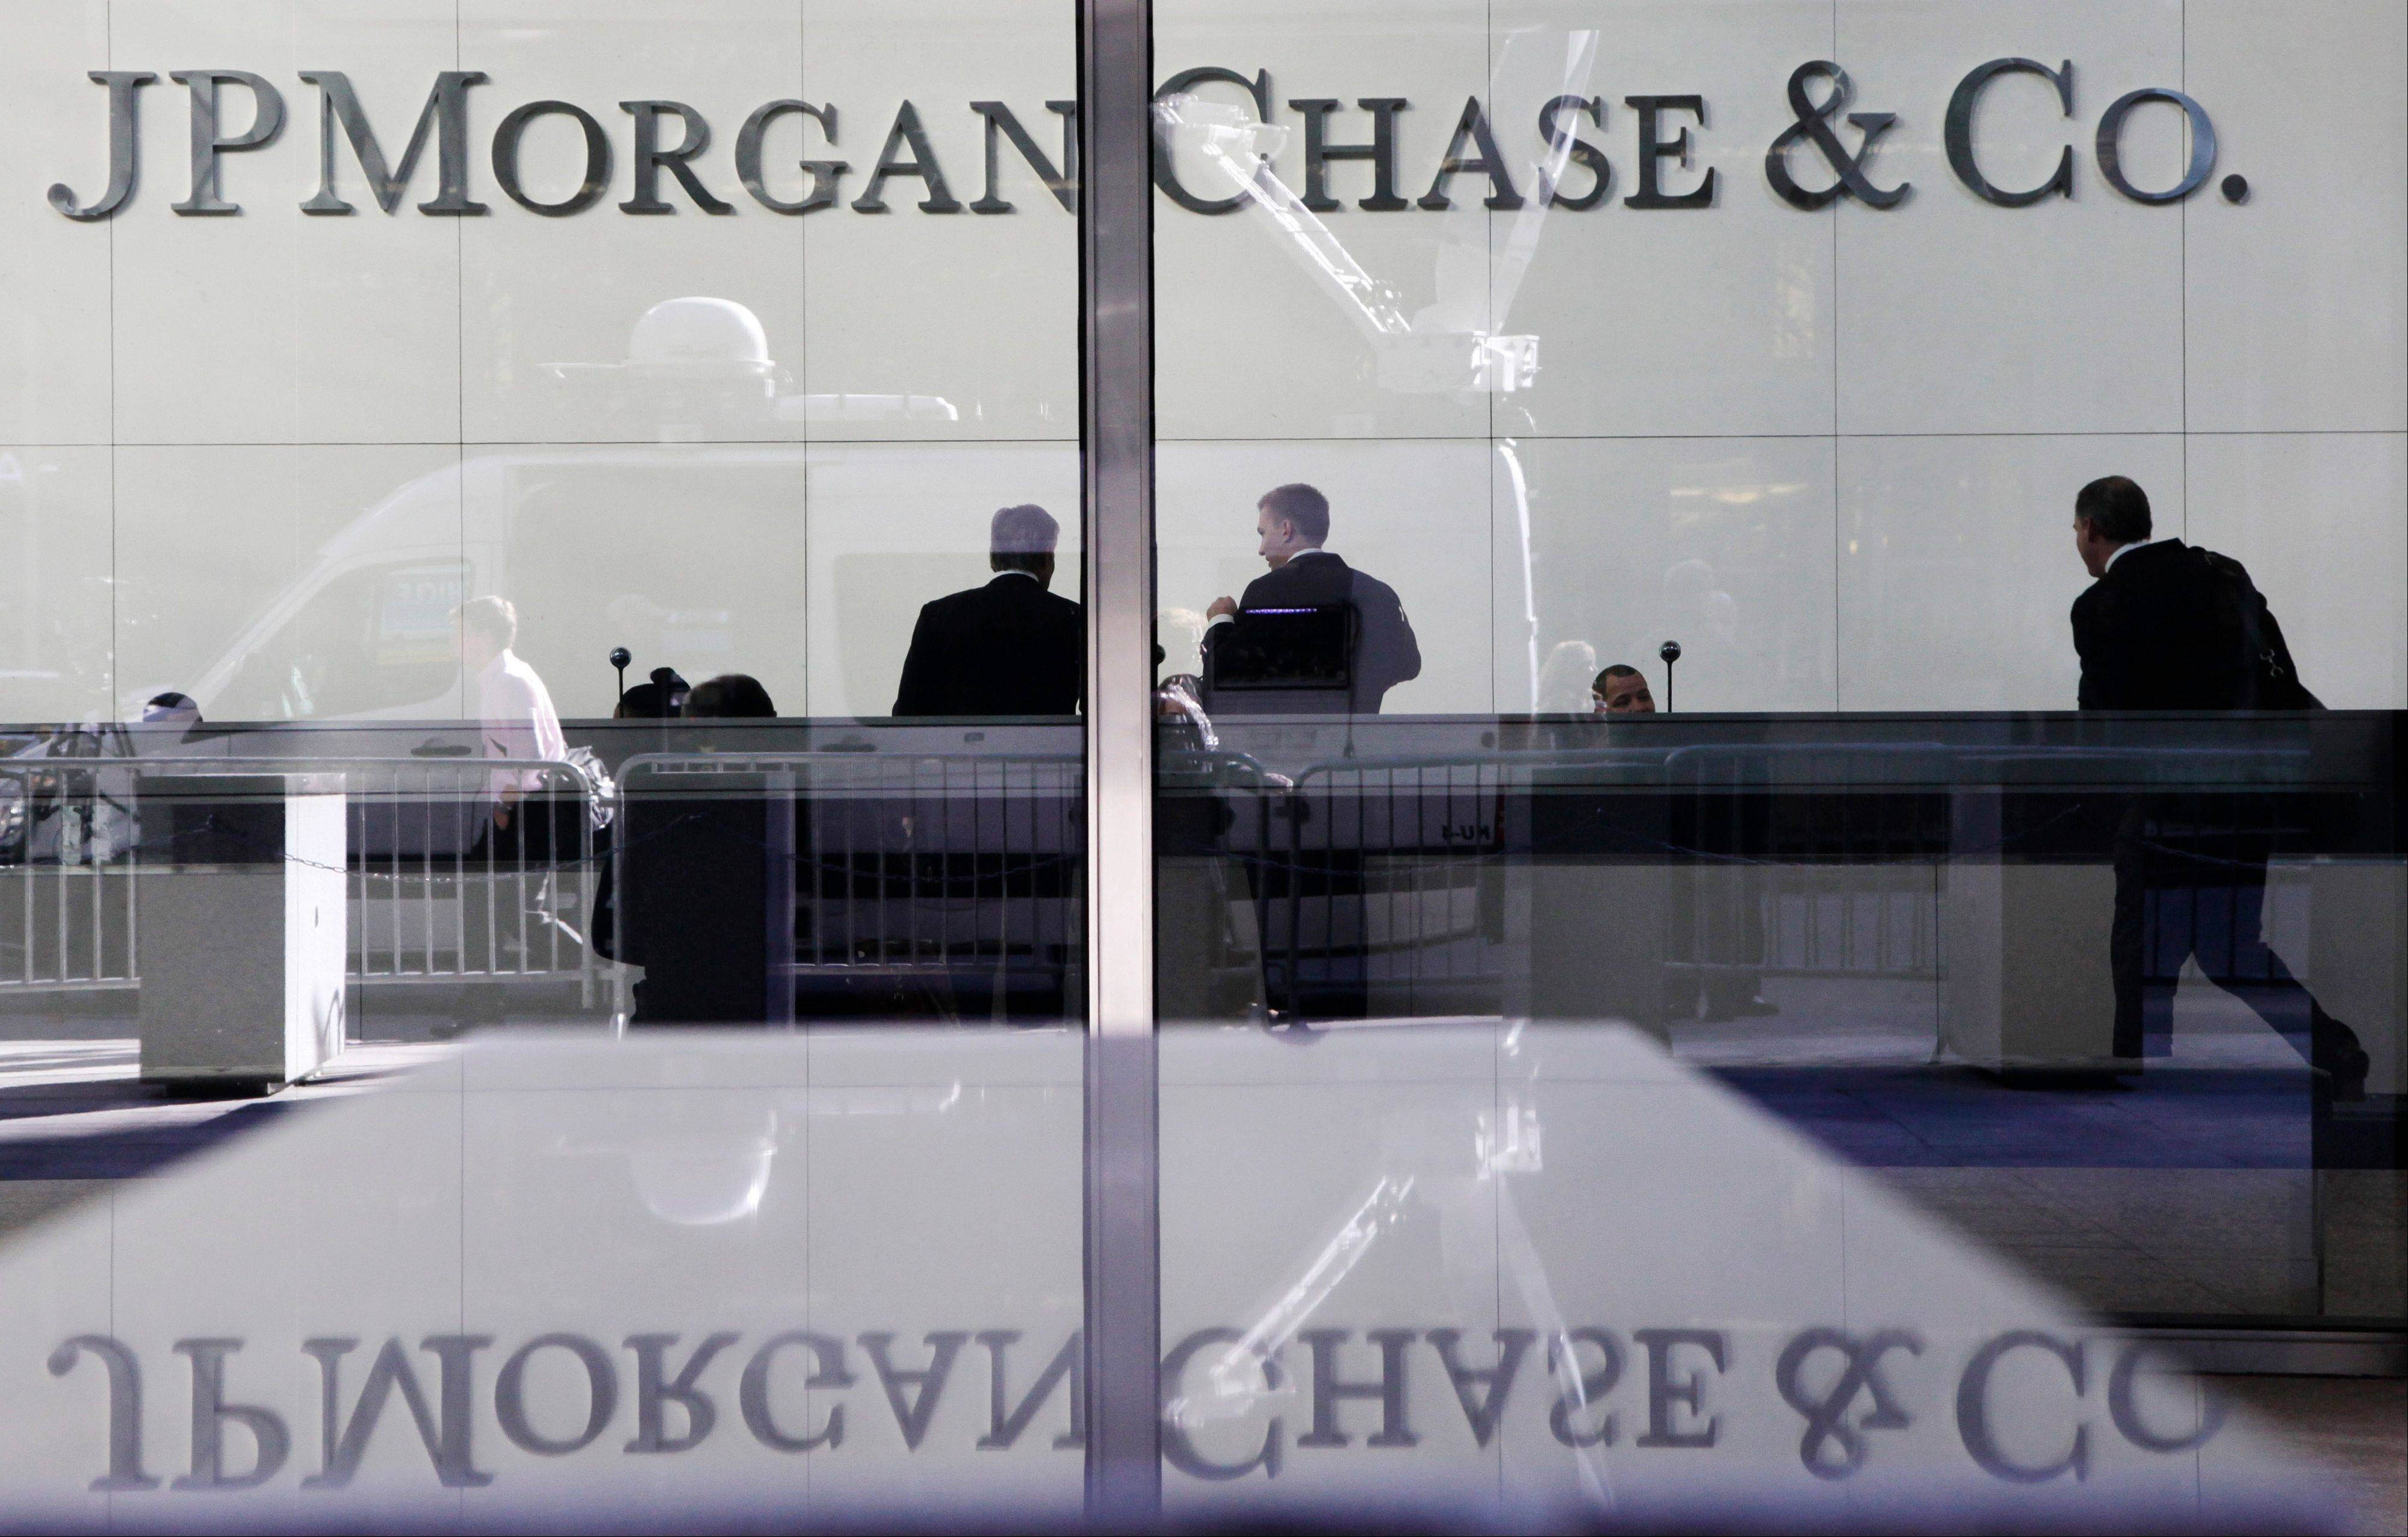 Spanish police say they have arrested a former JPMorgan Chase & Co. trader wanted by the United States for allegedly falsifying bank records to cover up trading losses that cost the bank more than $6 billion. A statement said Spaniard Javier Martin-Artajo, 49, was arrested Tuesday, Aug. 27, 2013 after he presented himself at a police station in Madrid.